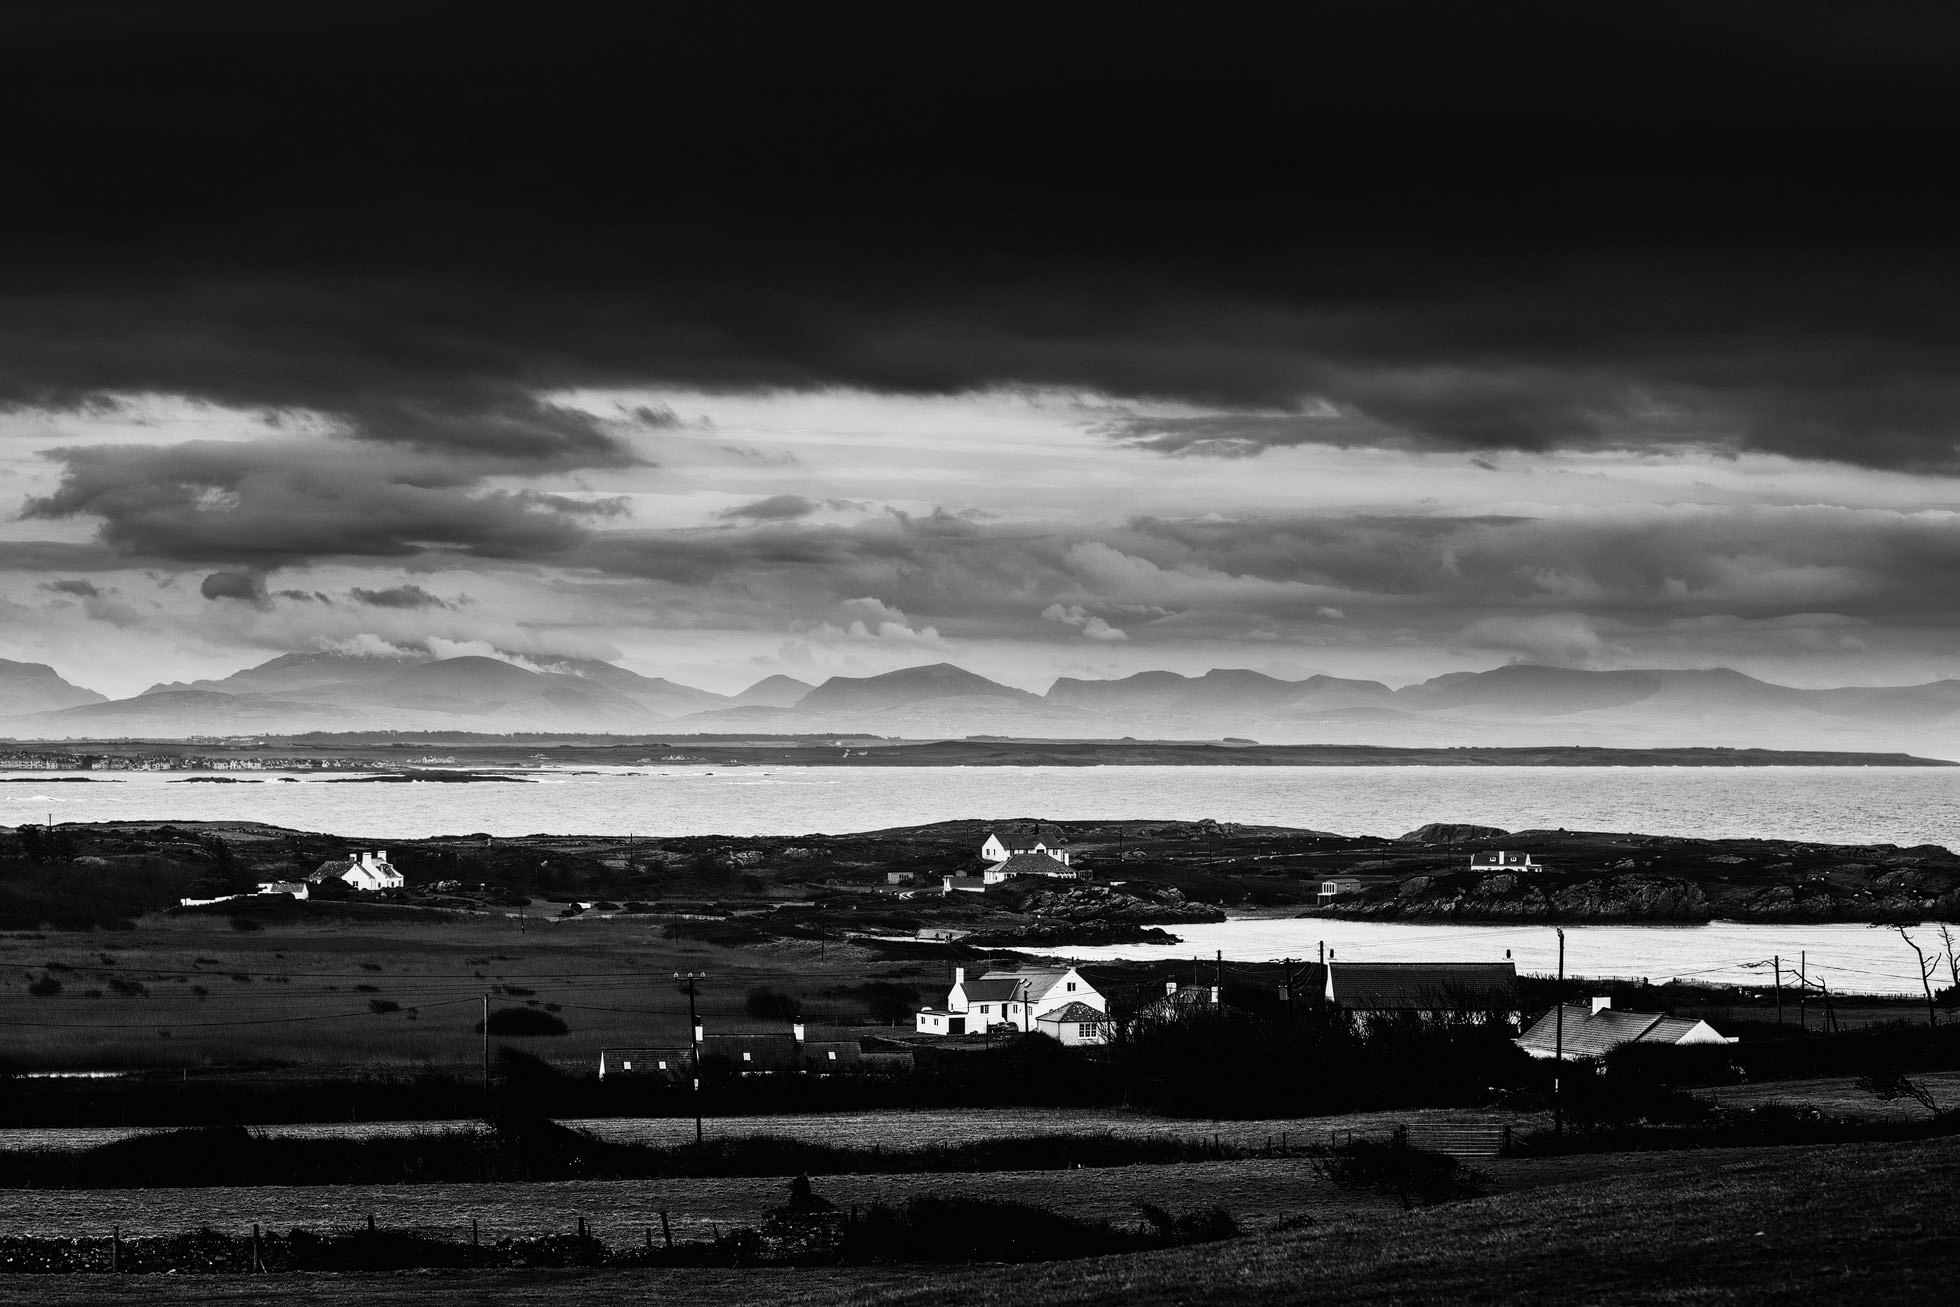 Views across The Bay at Anglesey